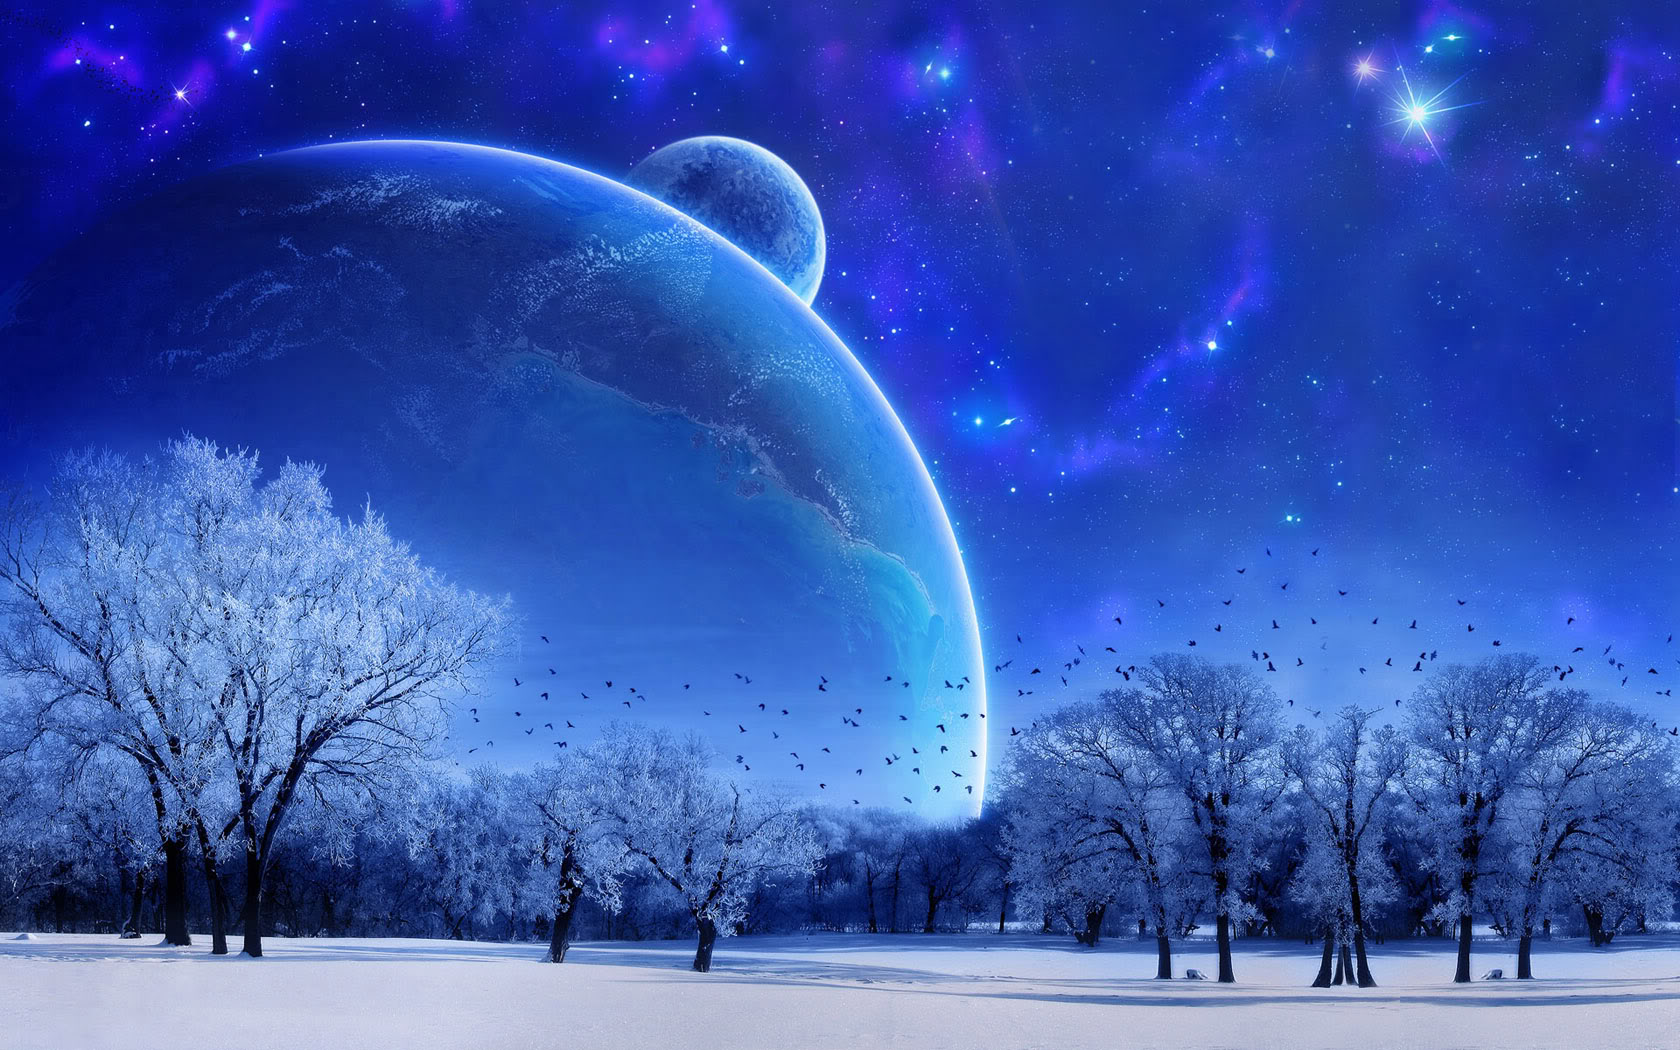 High quality Peacefull Winter Science Fiction Sci fi wallpaper 1680x1050